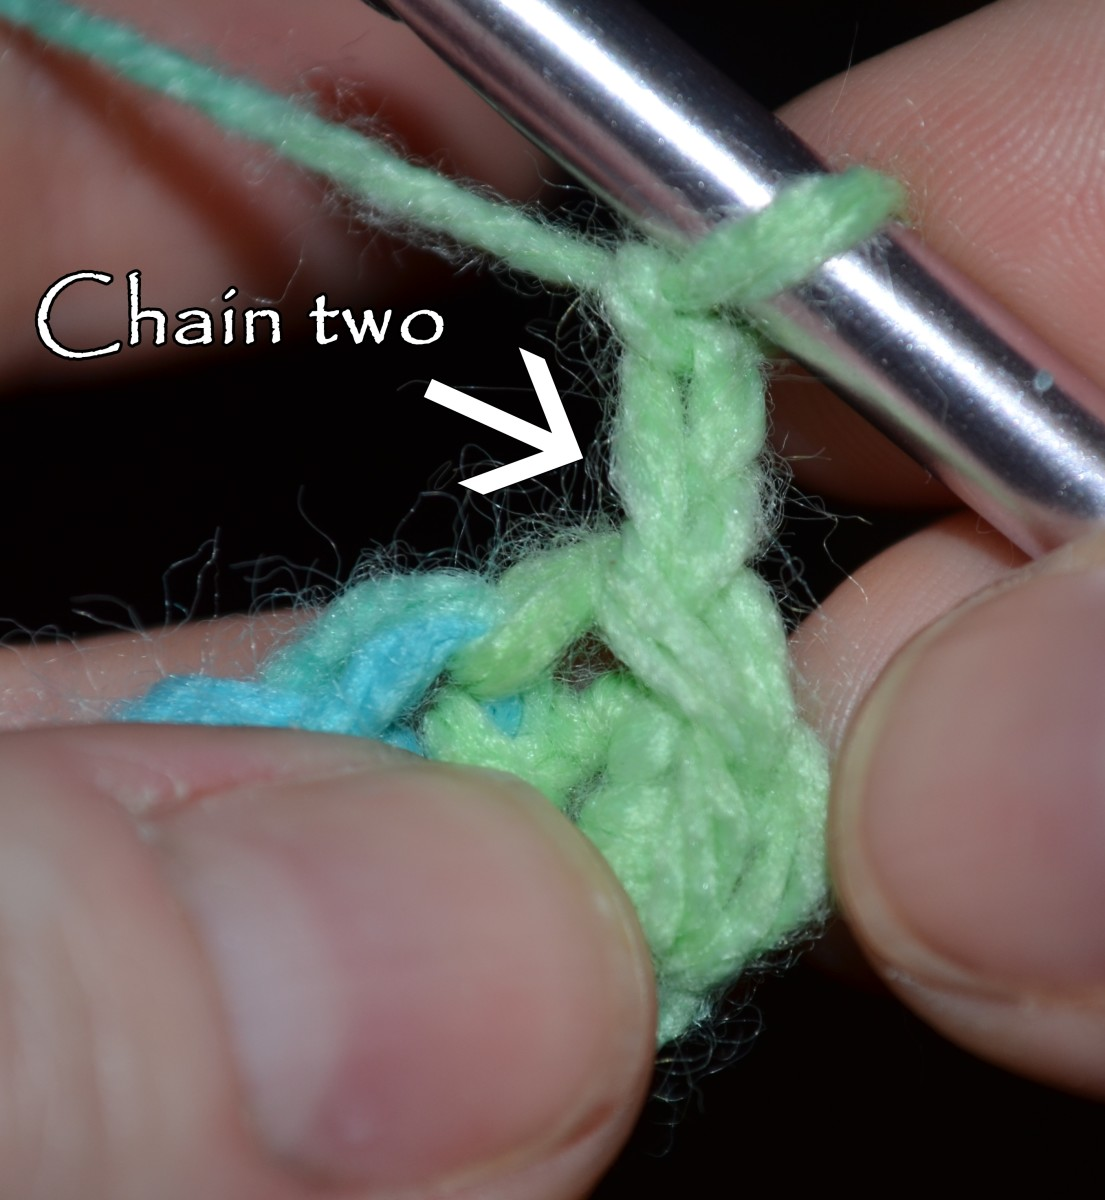 Chain two then complete a half double crochet in the same stitch (which is the slip stitch you made to finish the first round).